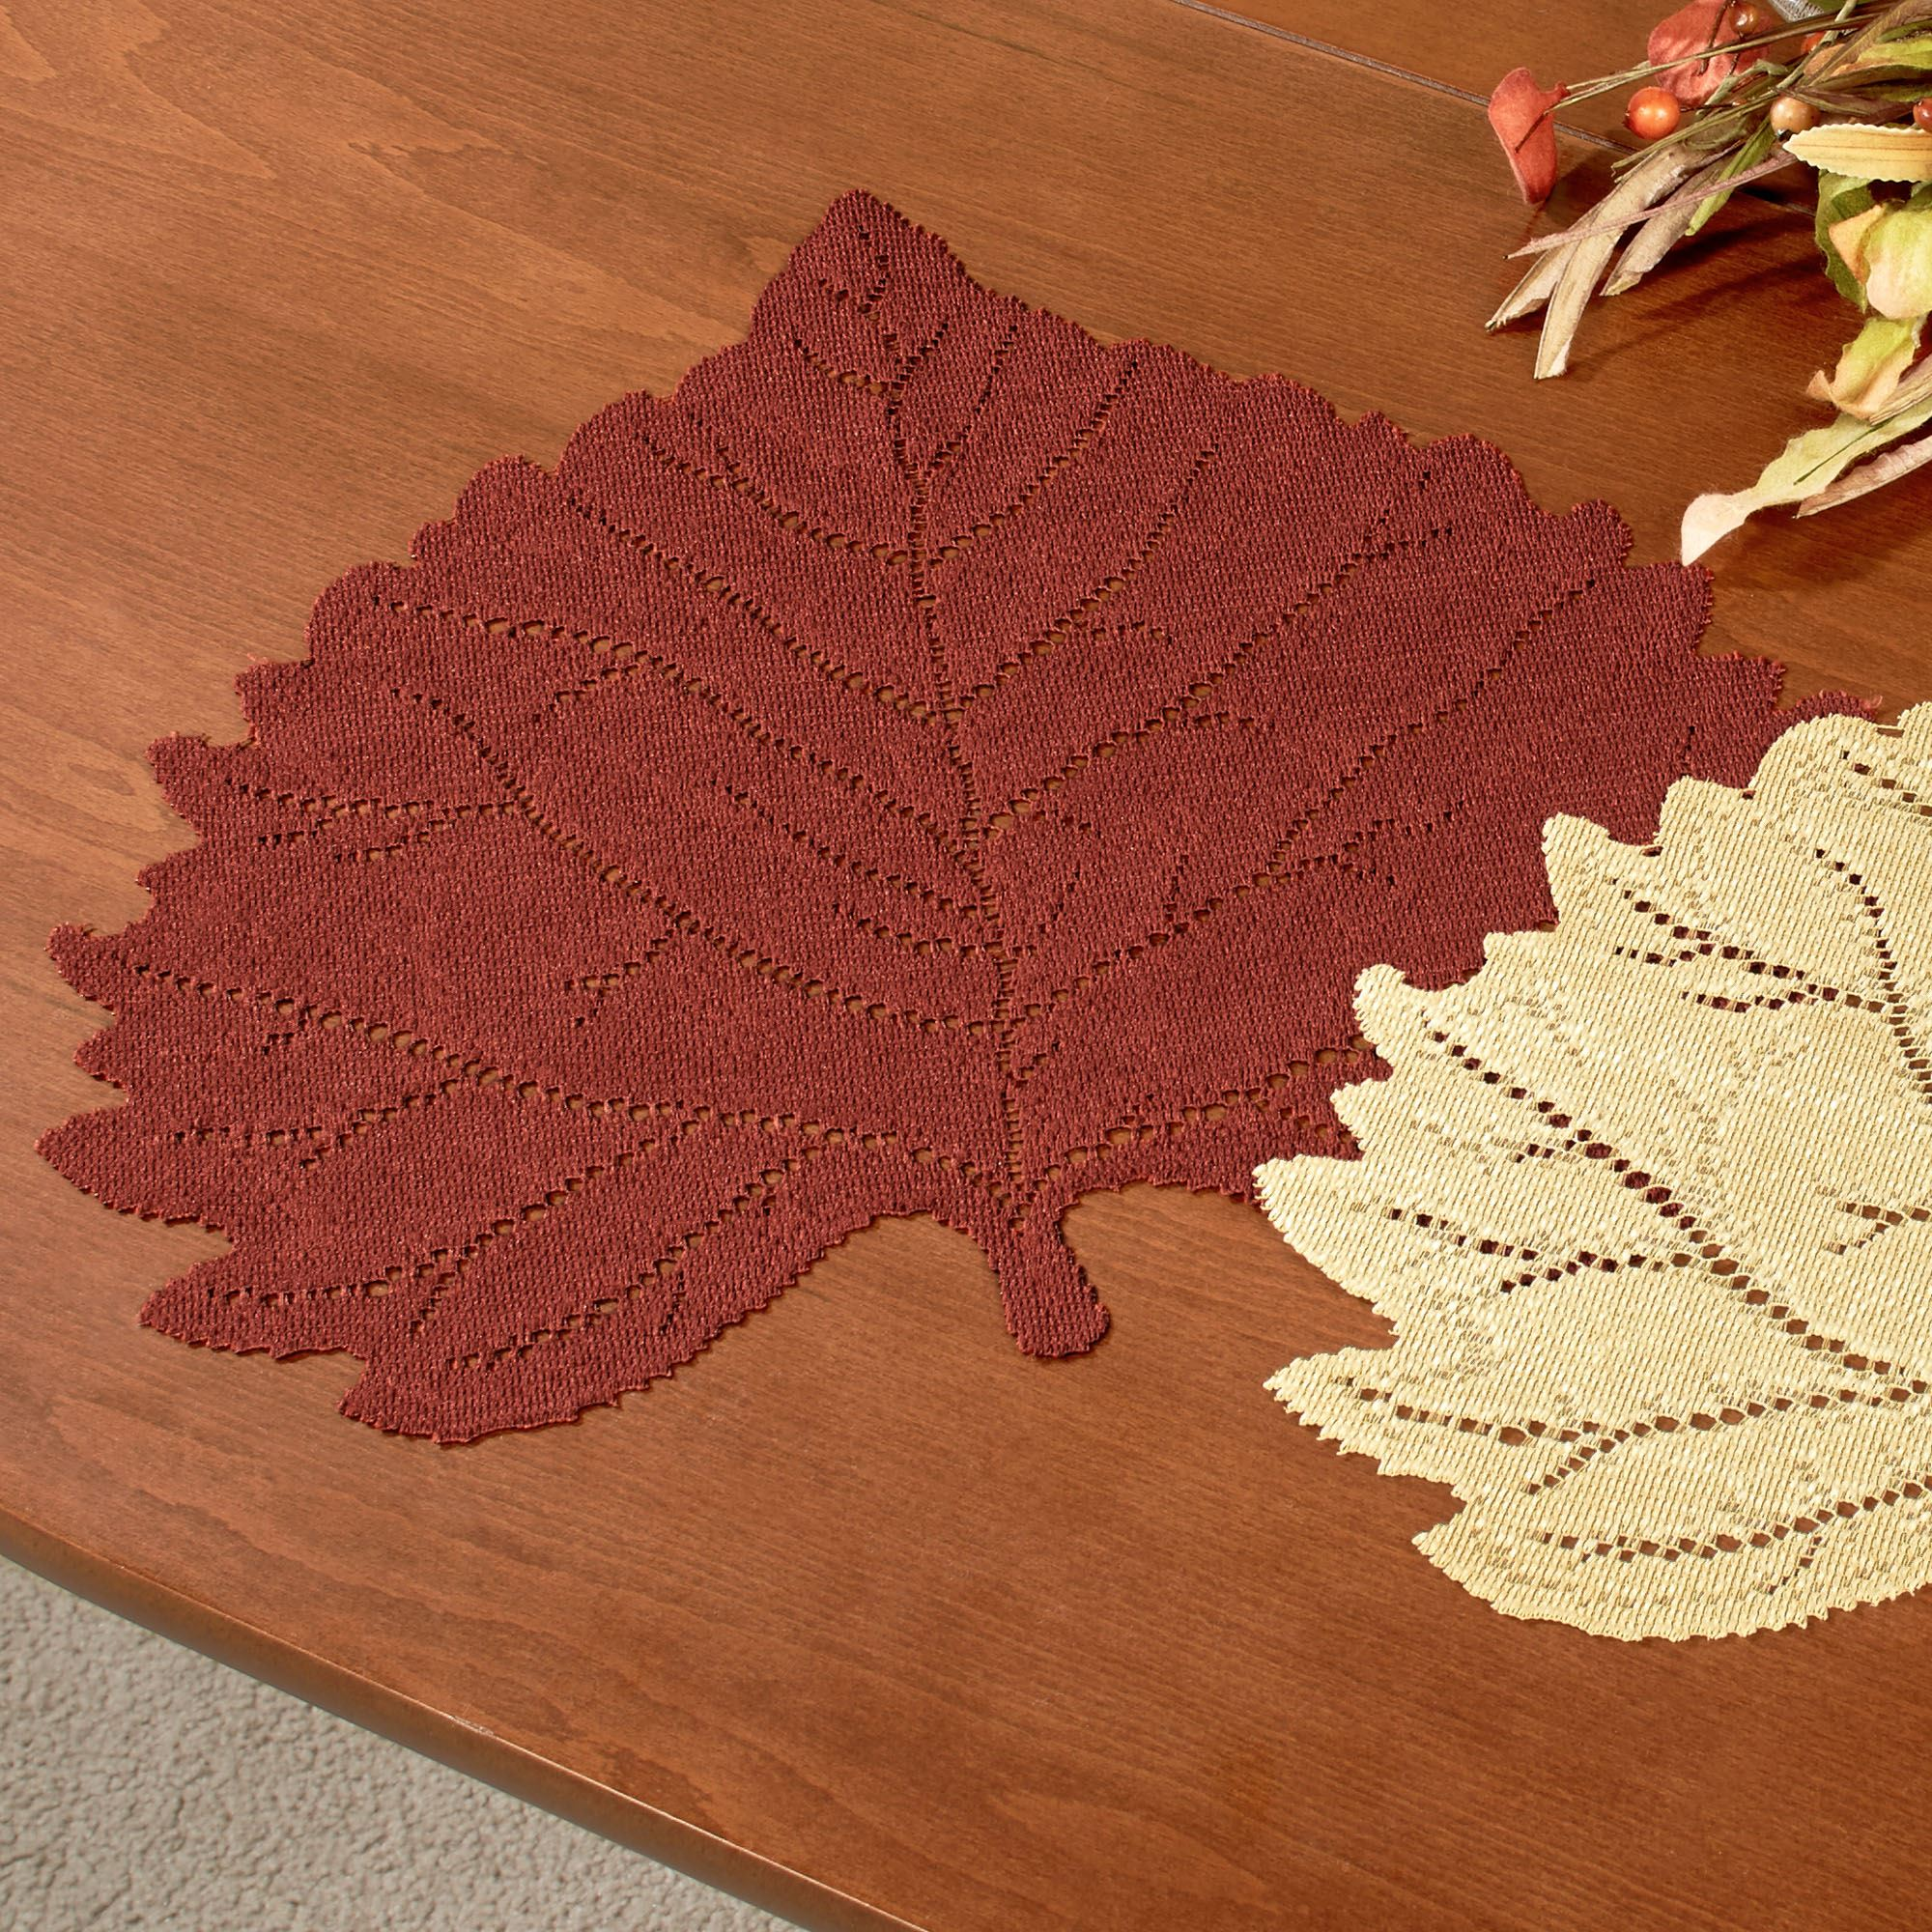 Strange Falling Leaves Autumn Placemat Set Of 4 Bralicious Painted Fabric Chair Ideas Braliciousco